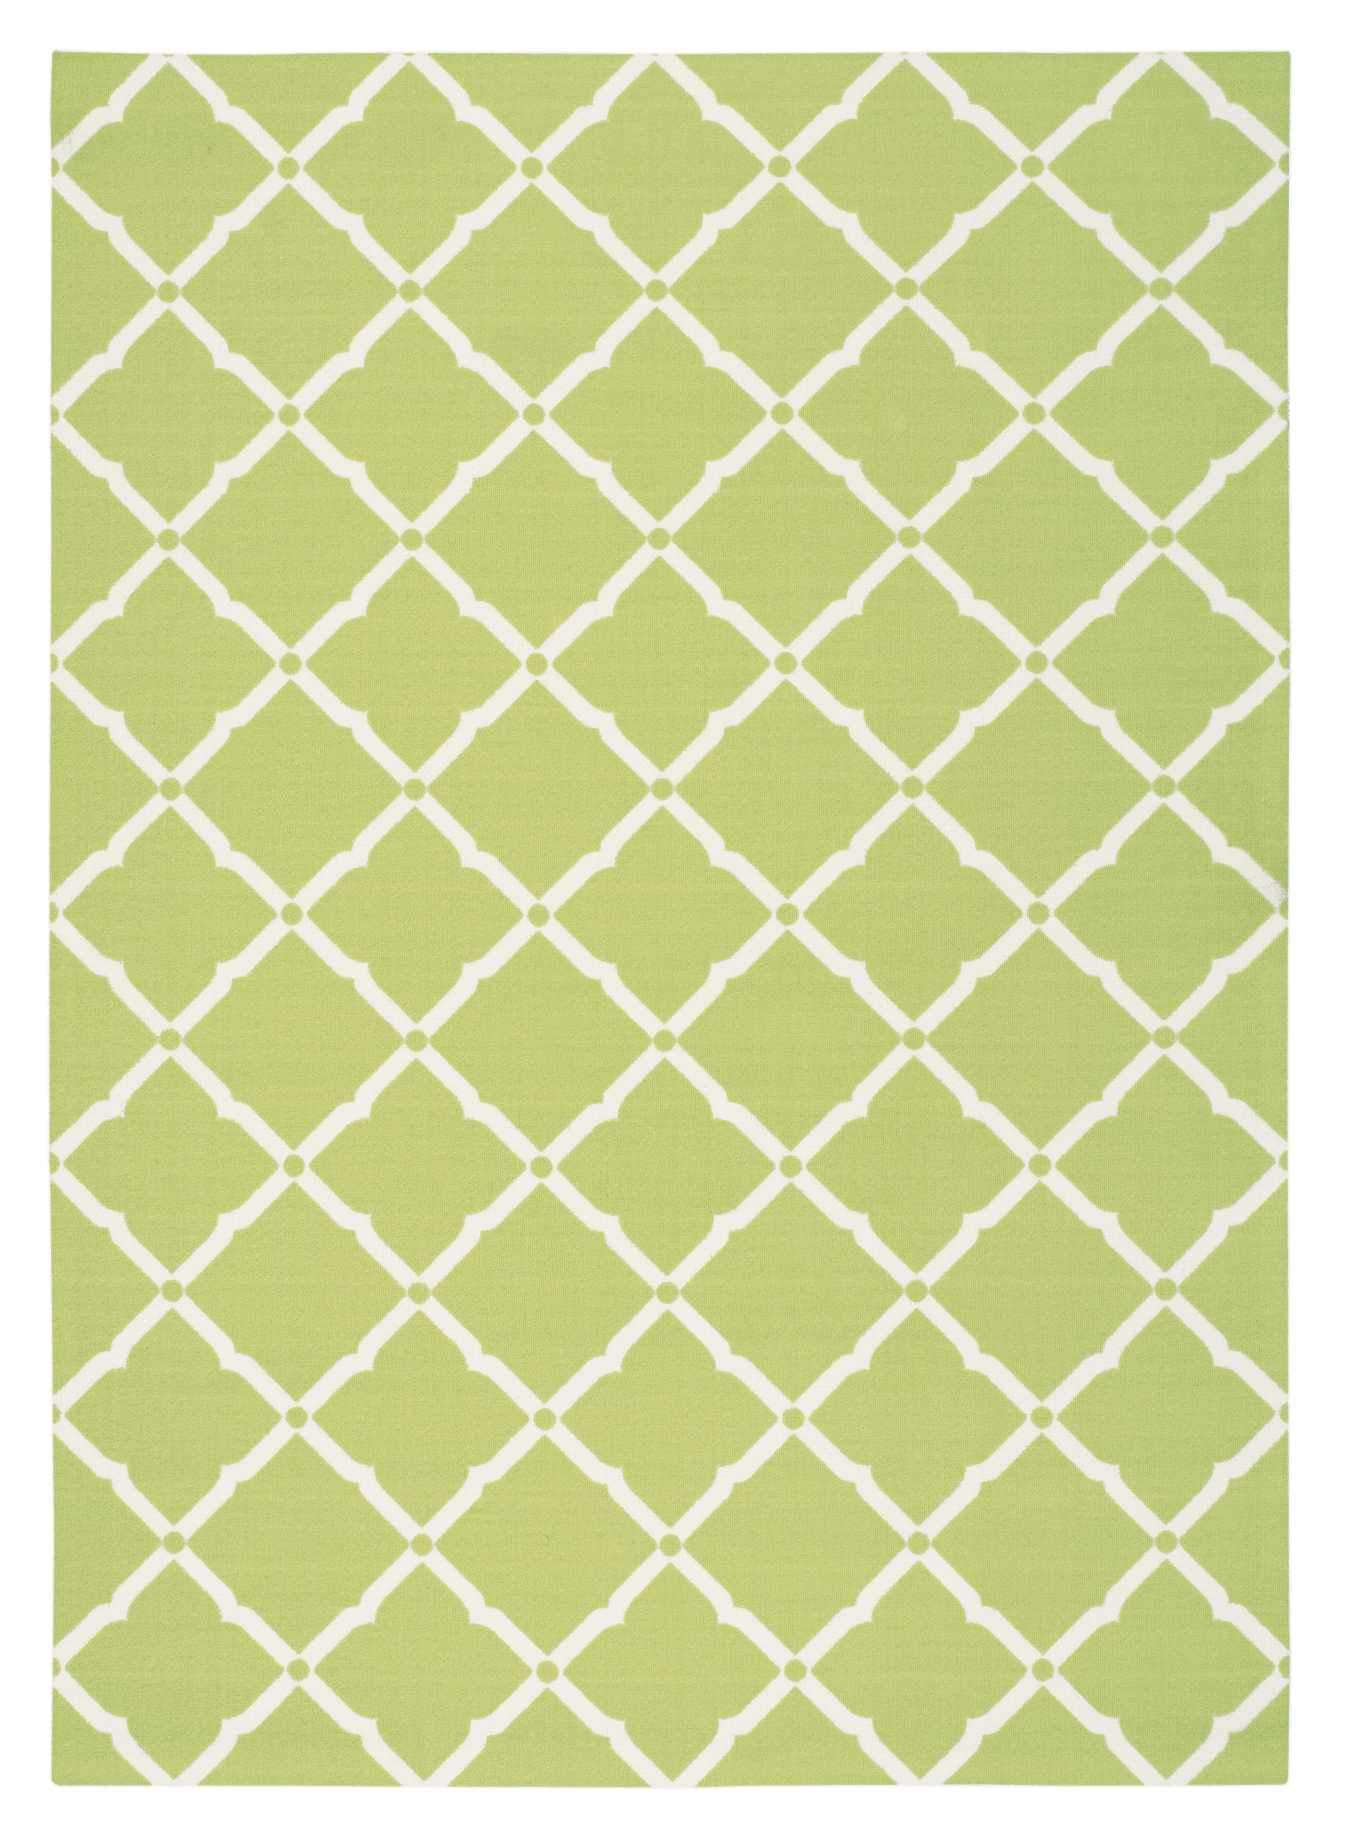 "Home & Garden Light Green Indoor/Outdoor Rug - 4 Size Options Rugs Nourison 4'4"" x 6'3"" Accent"